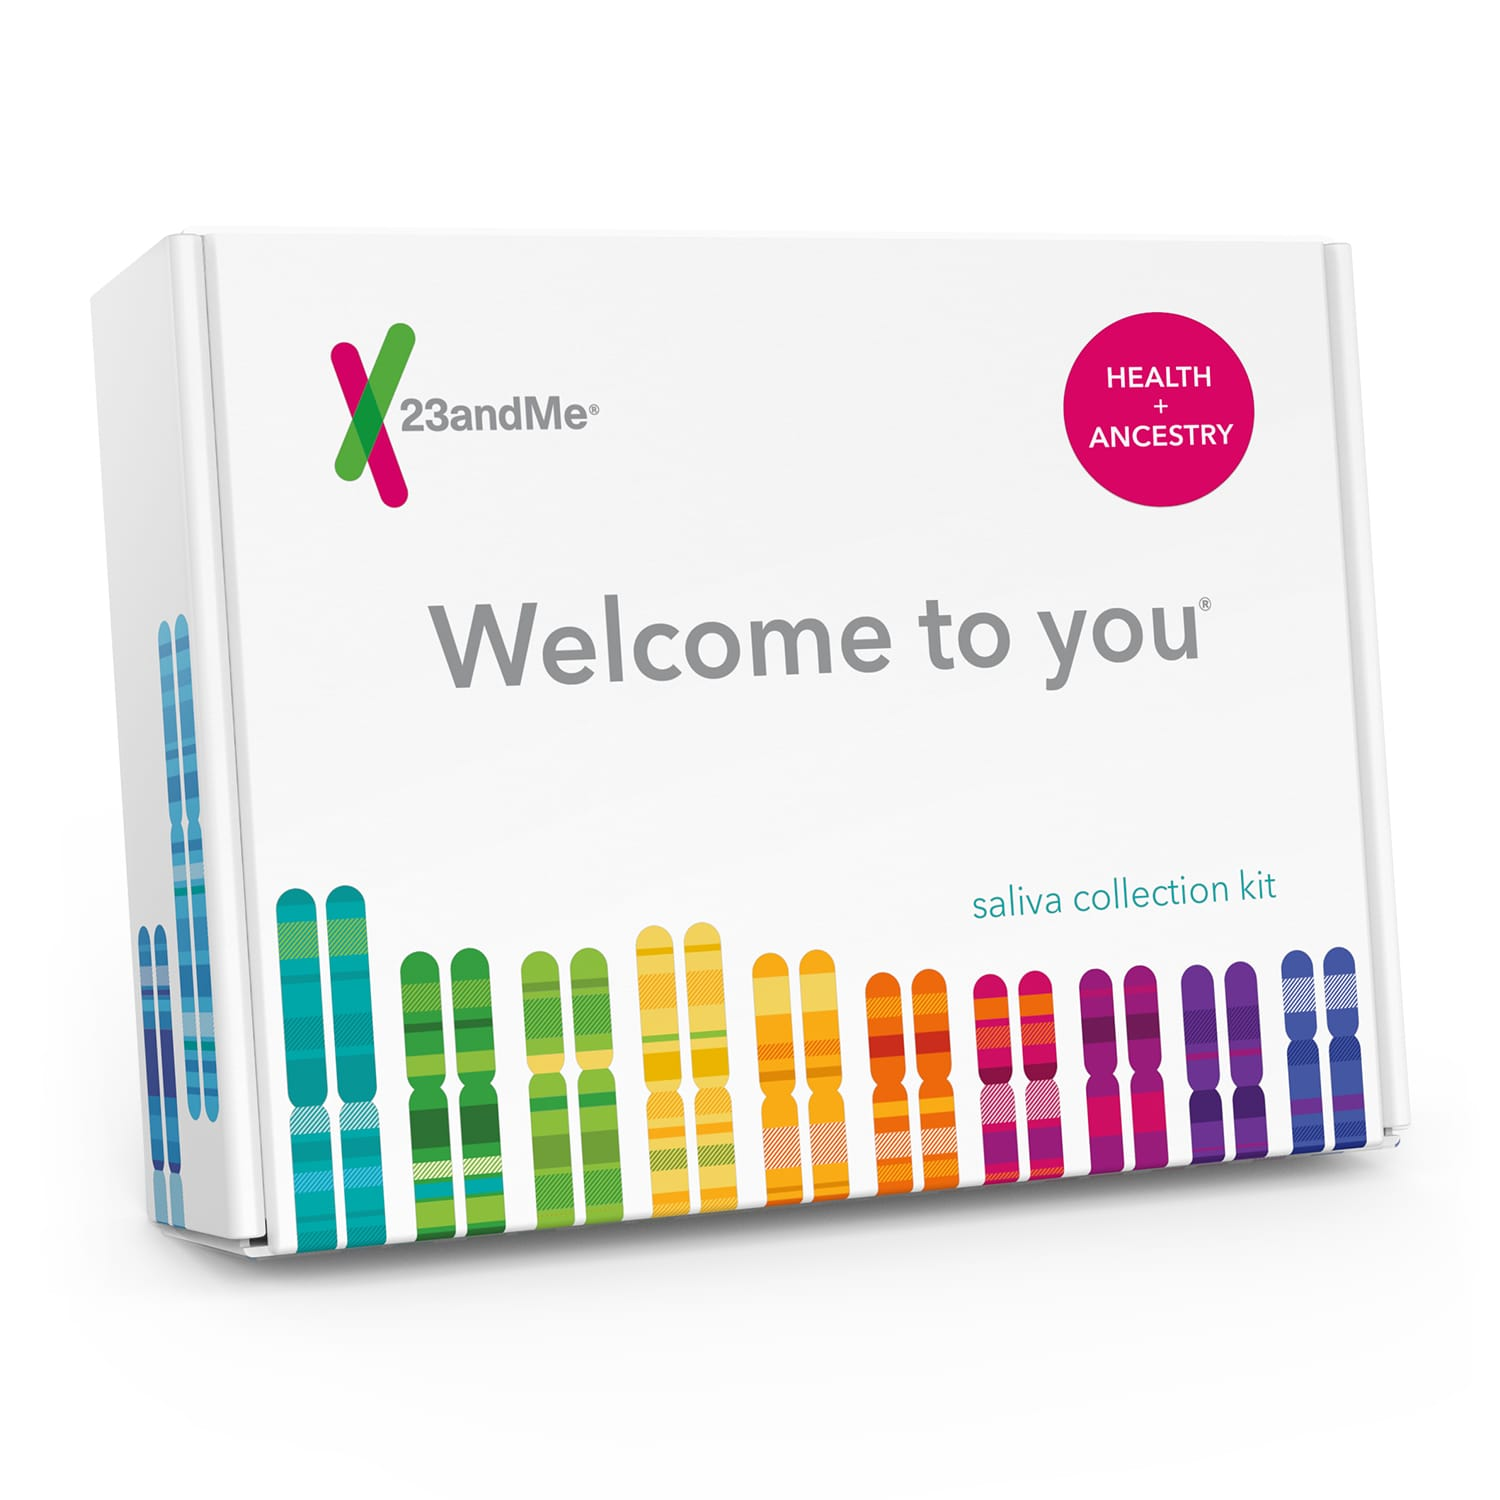 23andme_health_ancestry_kit